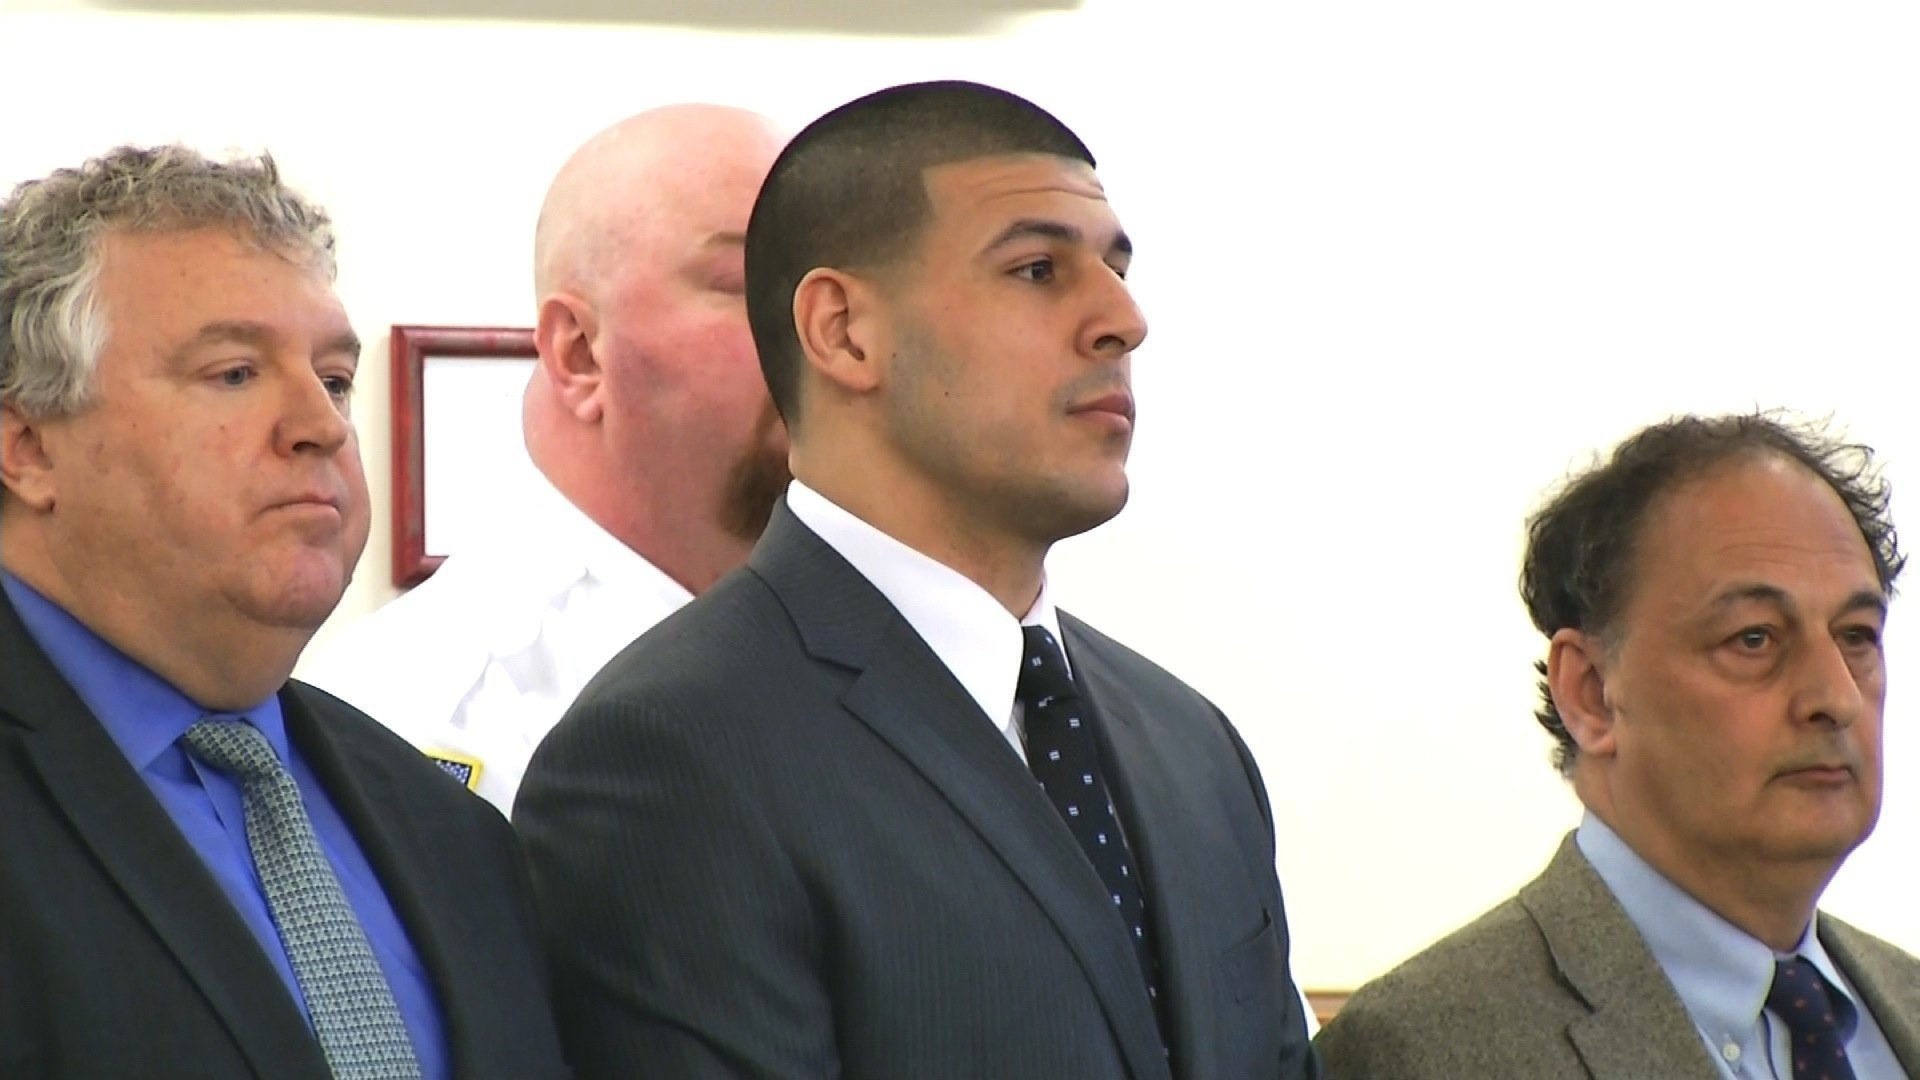 Convicted murderer and former NFL star Aaron Hernandez was found hanged in his Massachusetts prison cell April 19th, 2017, officials said, just days after he was acquitted in a separate murder case.